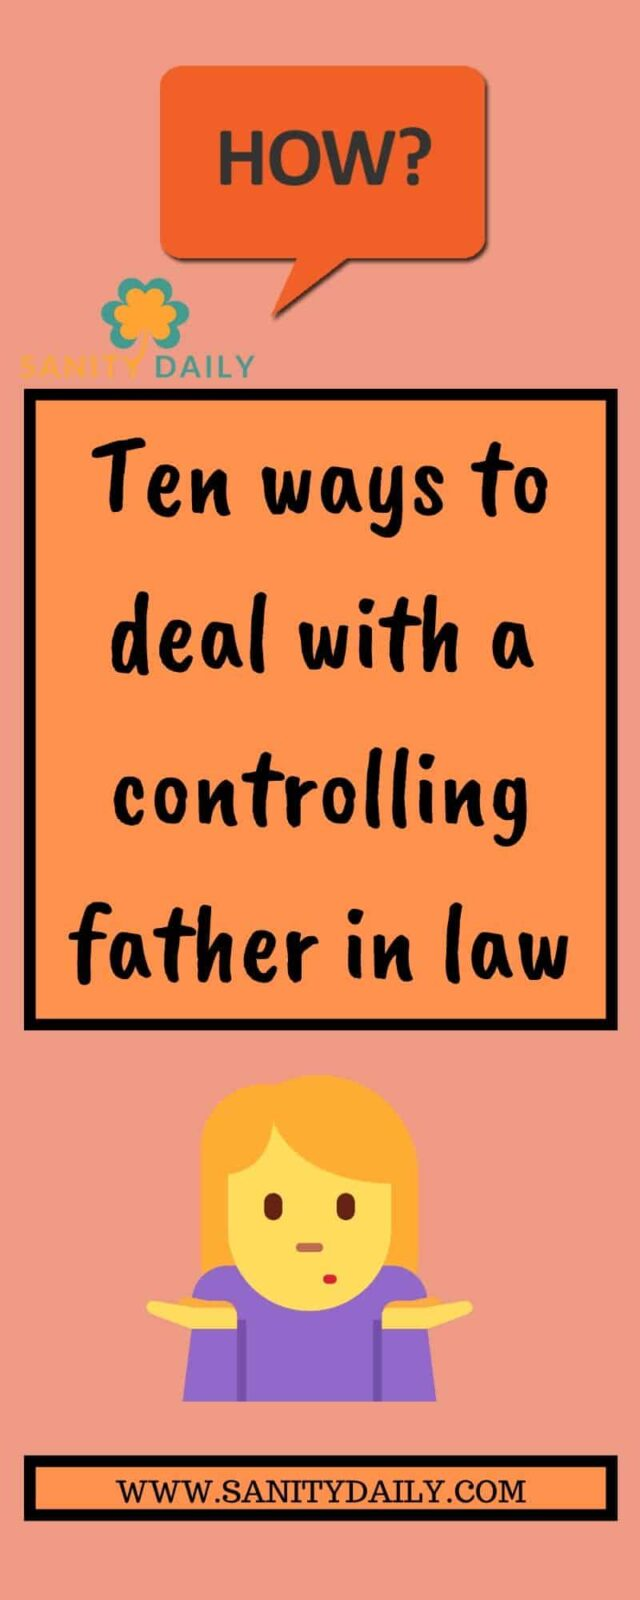 How to deal with controlling father in law